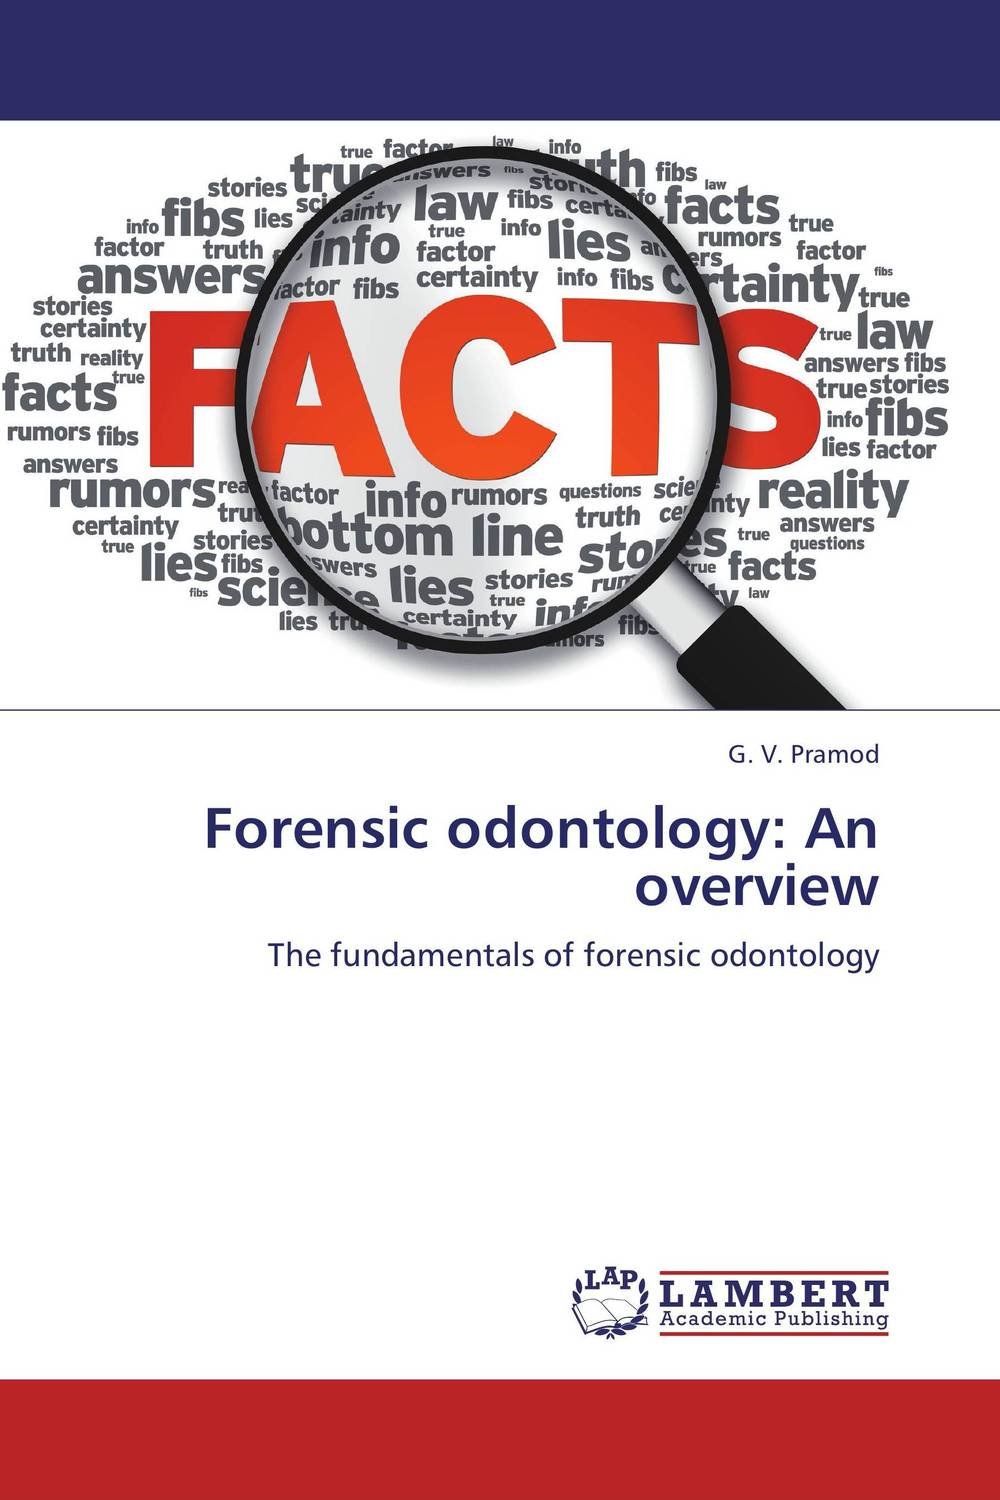 Forensic odontology: An overview karanprakash singh ramanpreet kaur bhullar and sumit kochhar forensic dentistry teeth and their secrets